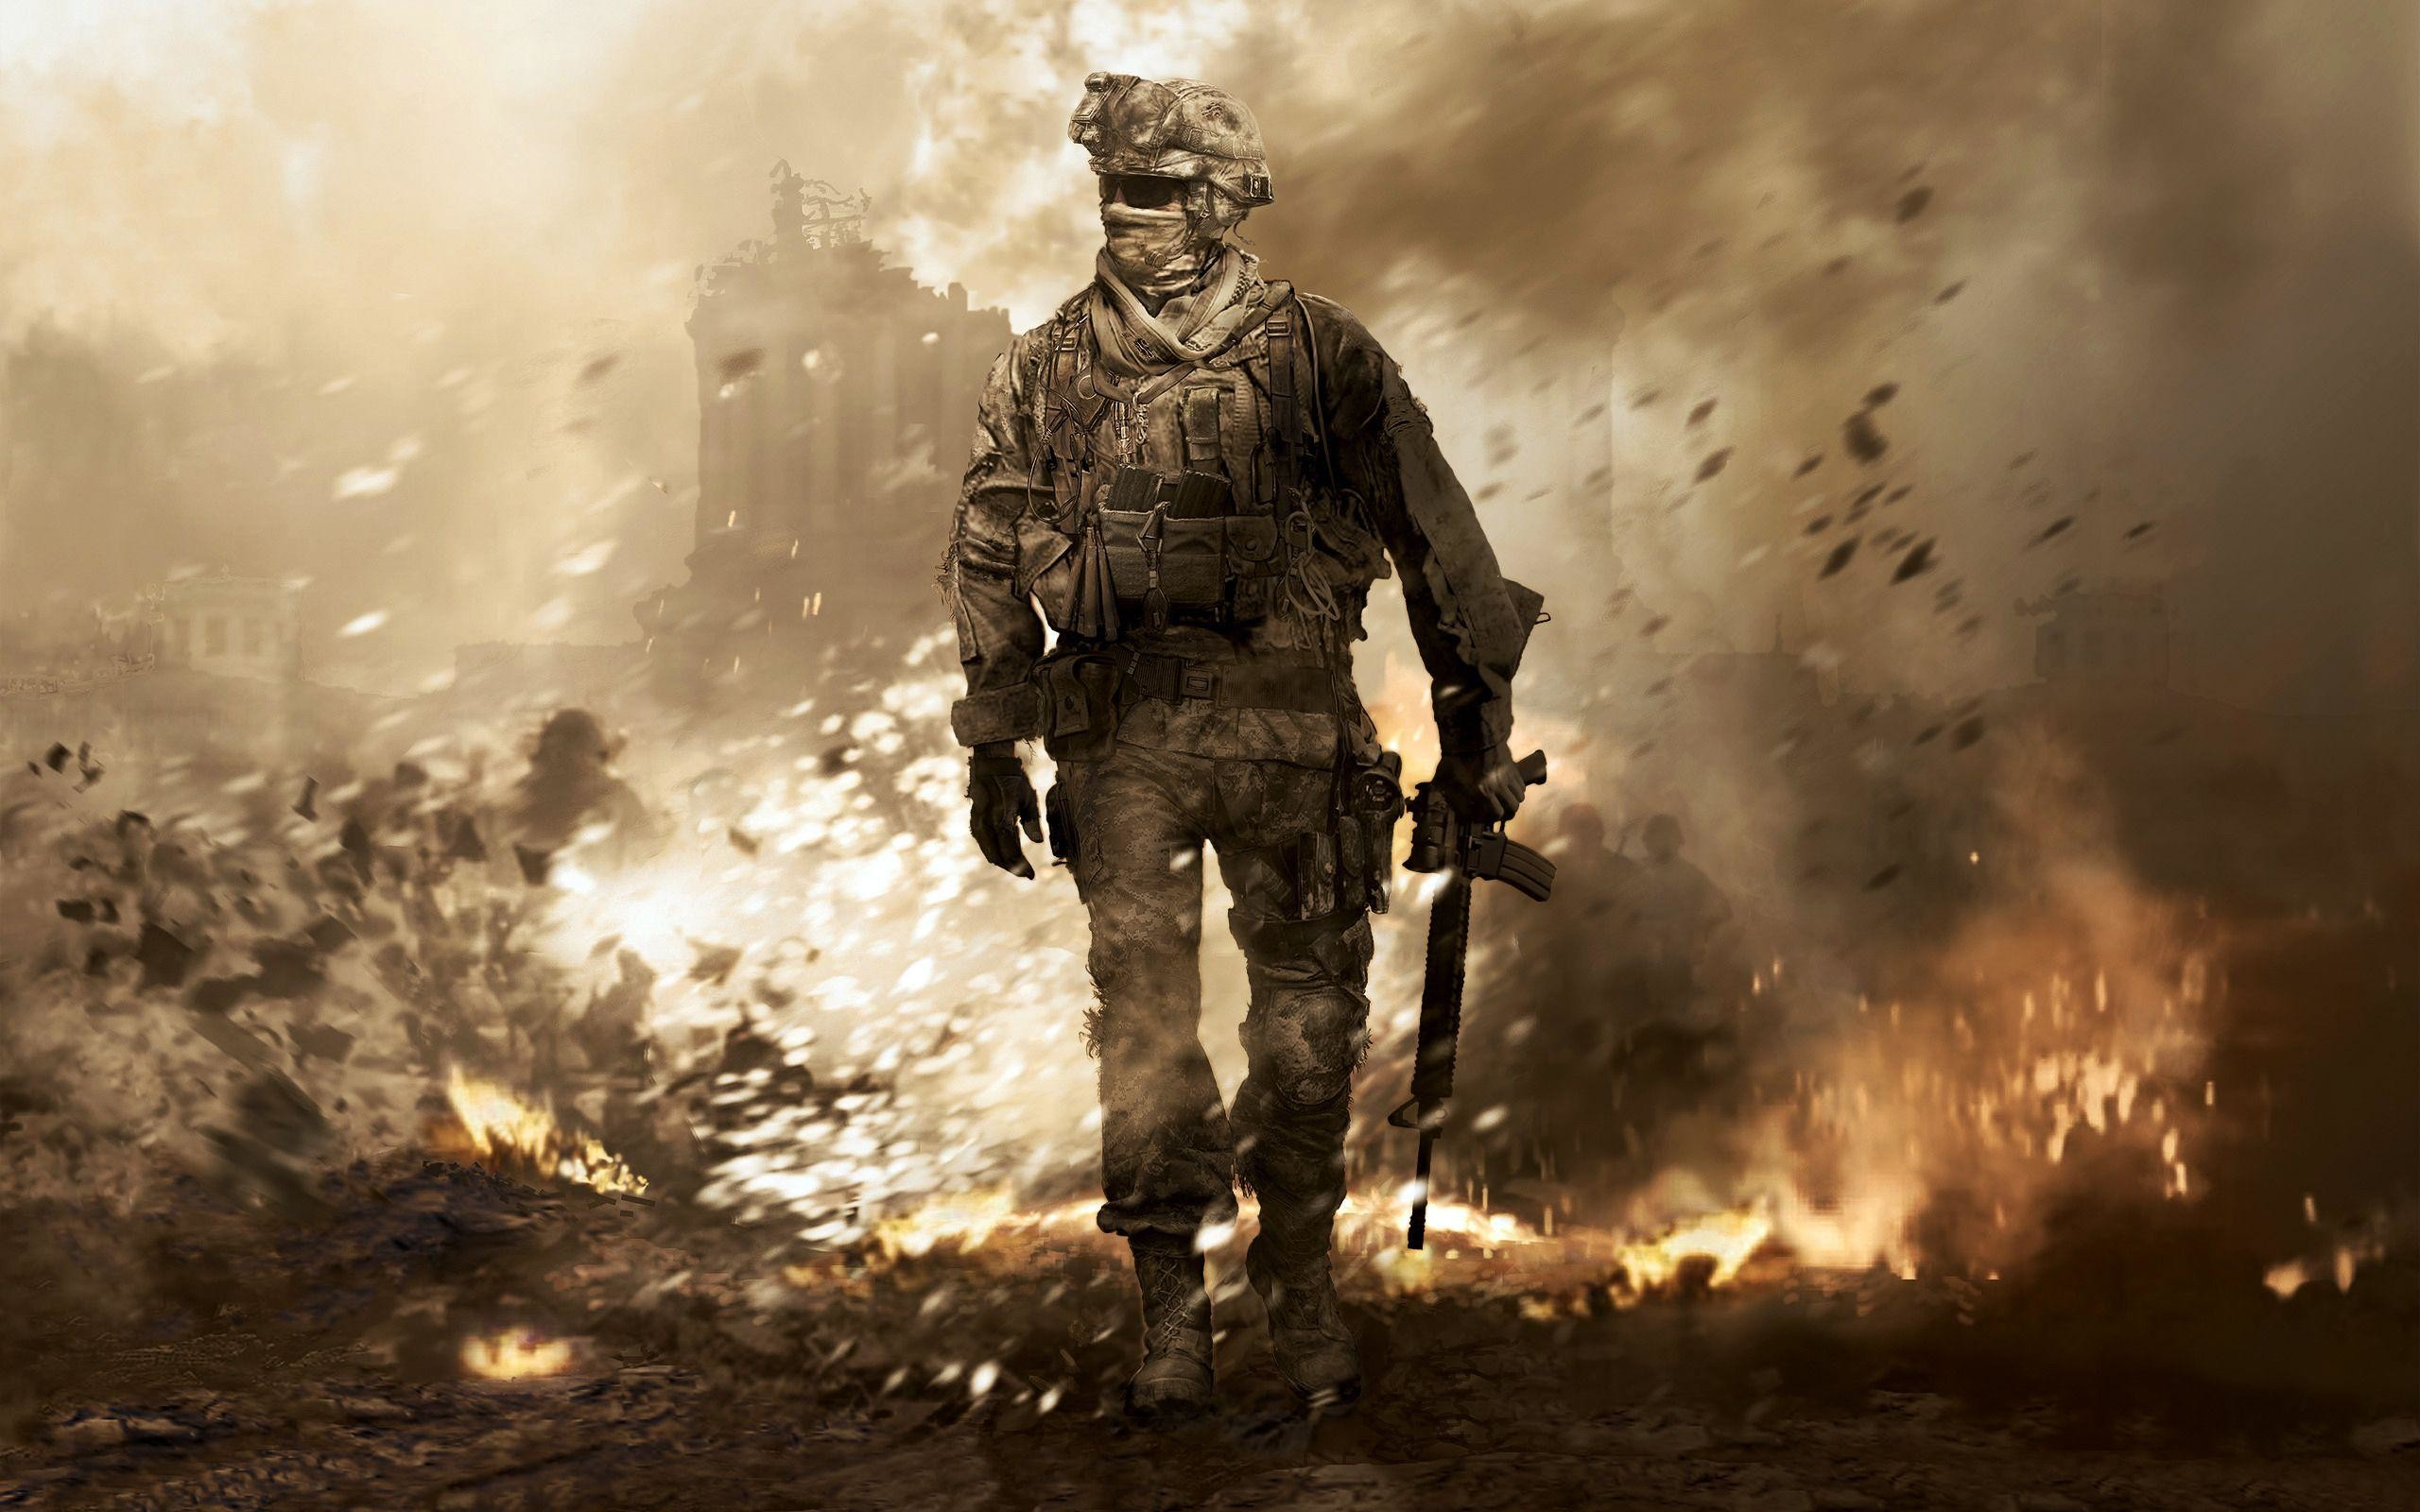 Call of Duty 4 Wallpaper (72+ images)